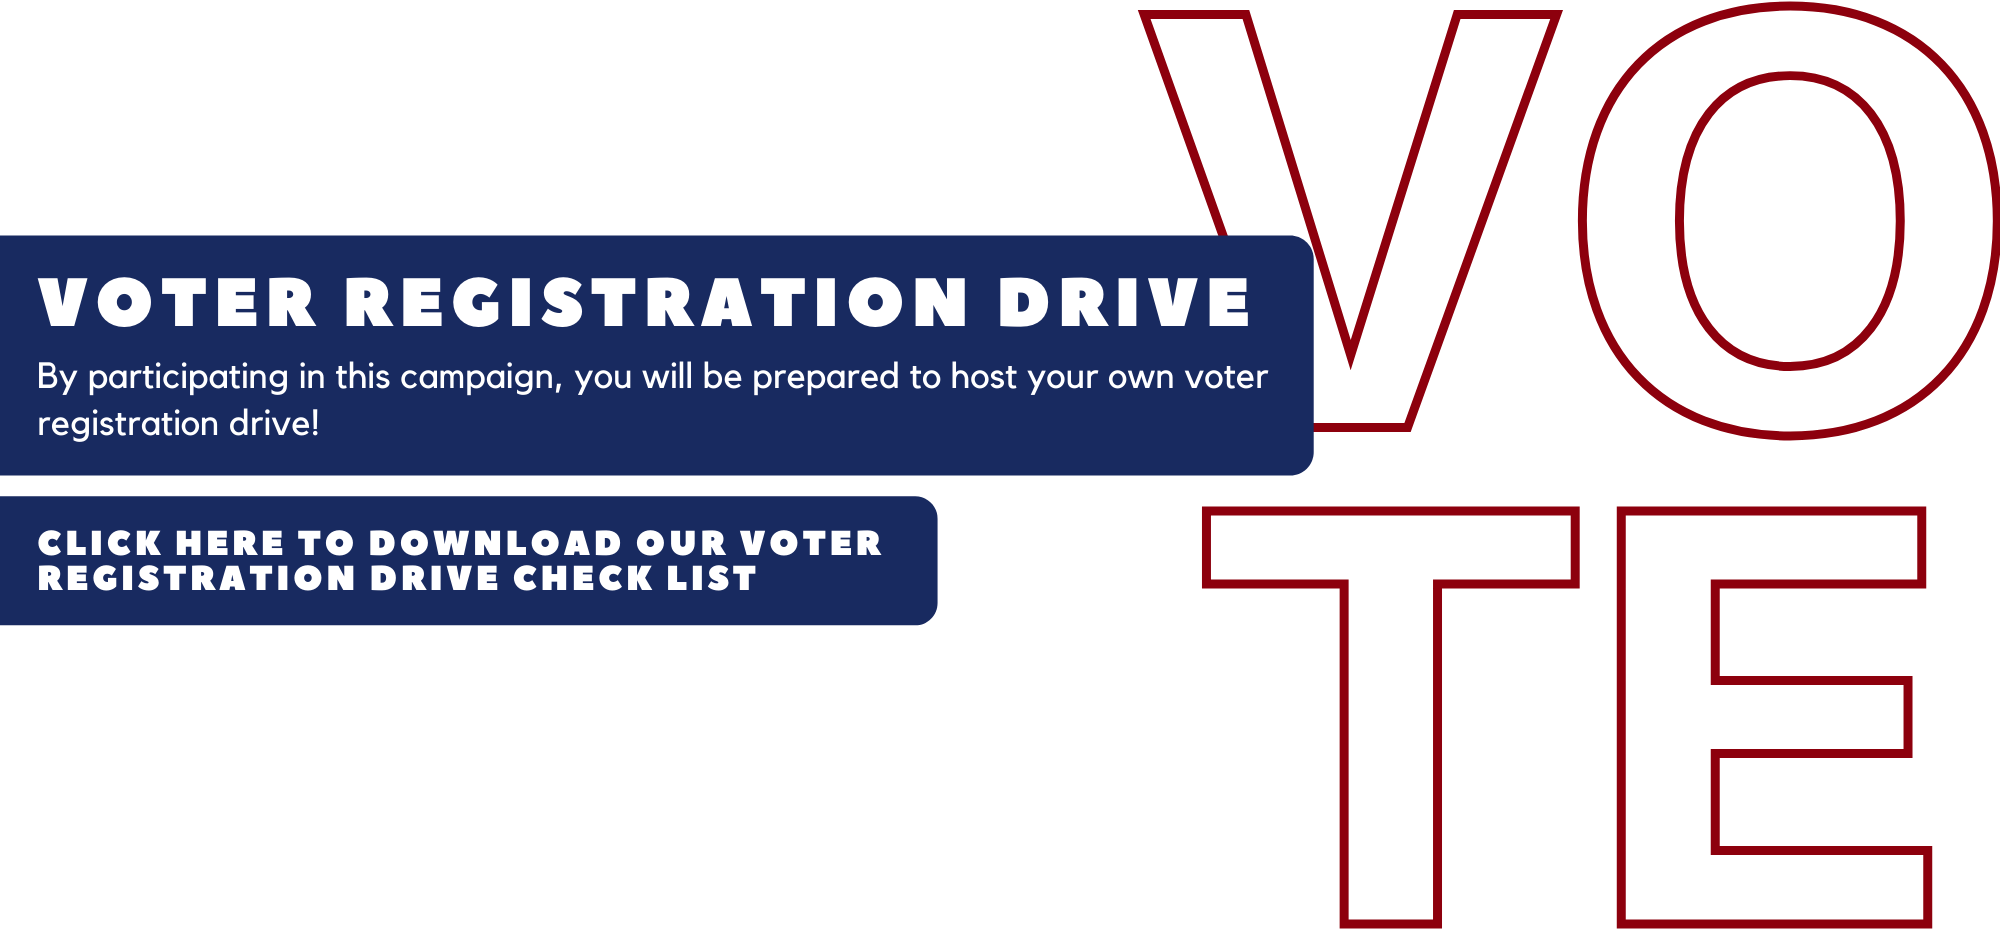 Graphic with a white background and red letters that spell out vote. The text over the graphic says voter registration drive. By participating in this campaign, you will be prepared to host your own voter registration drive. Click anywhere on the graphic to download the voter registration drive checklist.